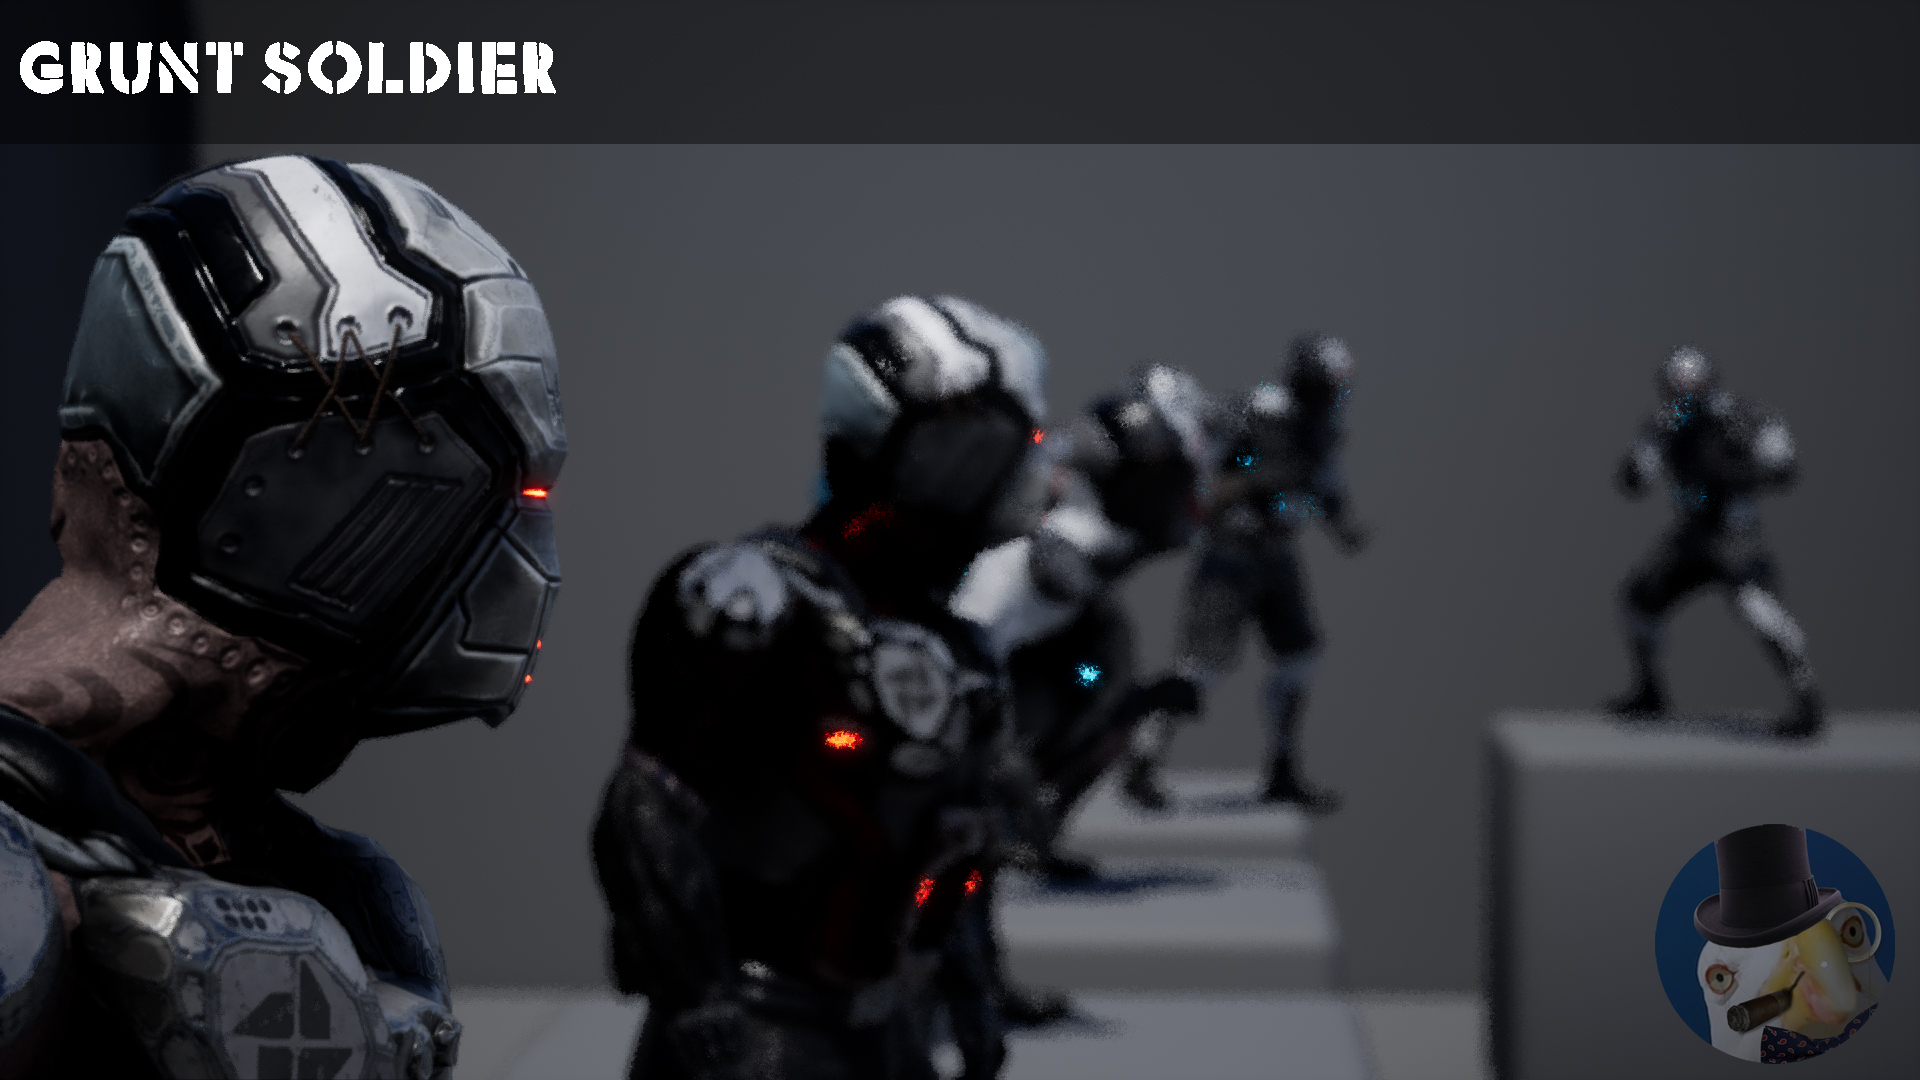 Grunt Soldier by Dspazio in Characters - UE4 Marketplace